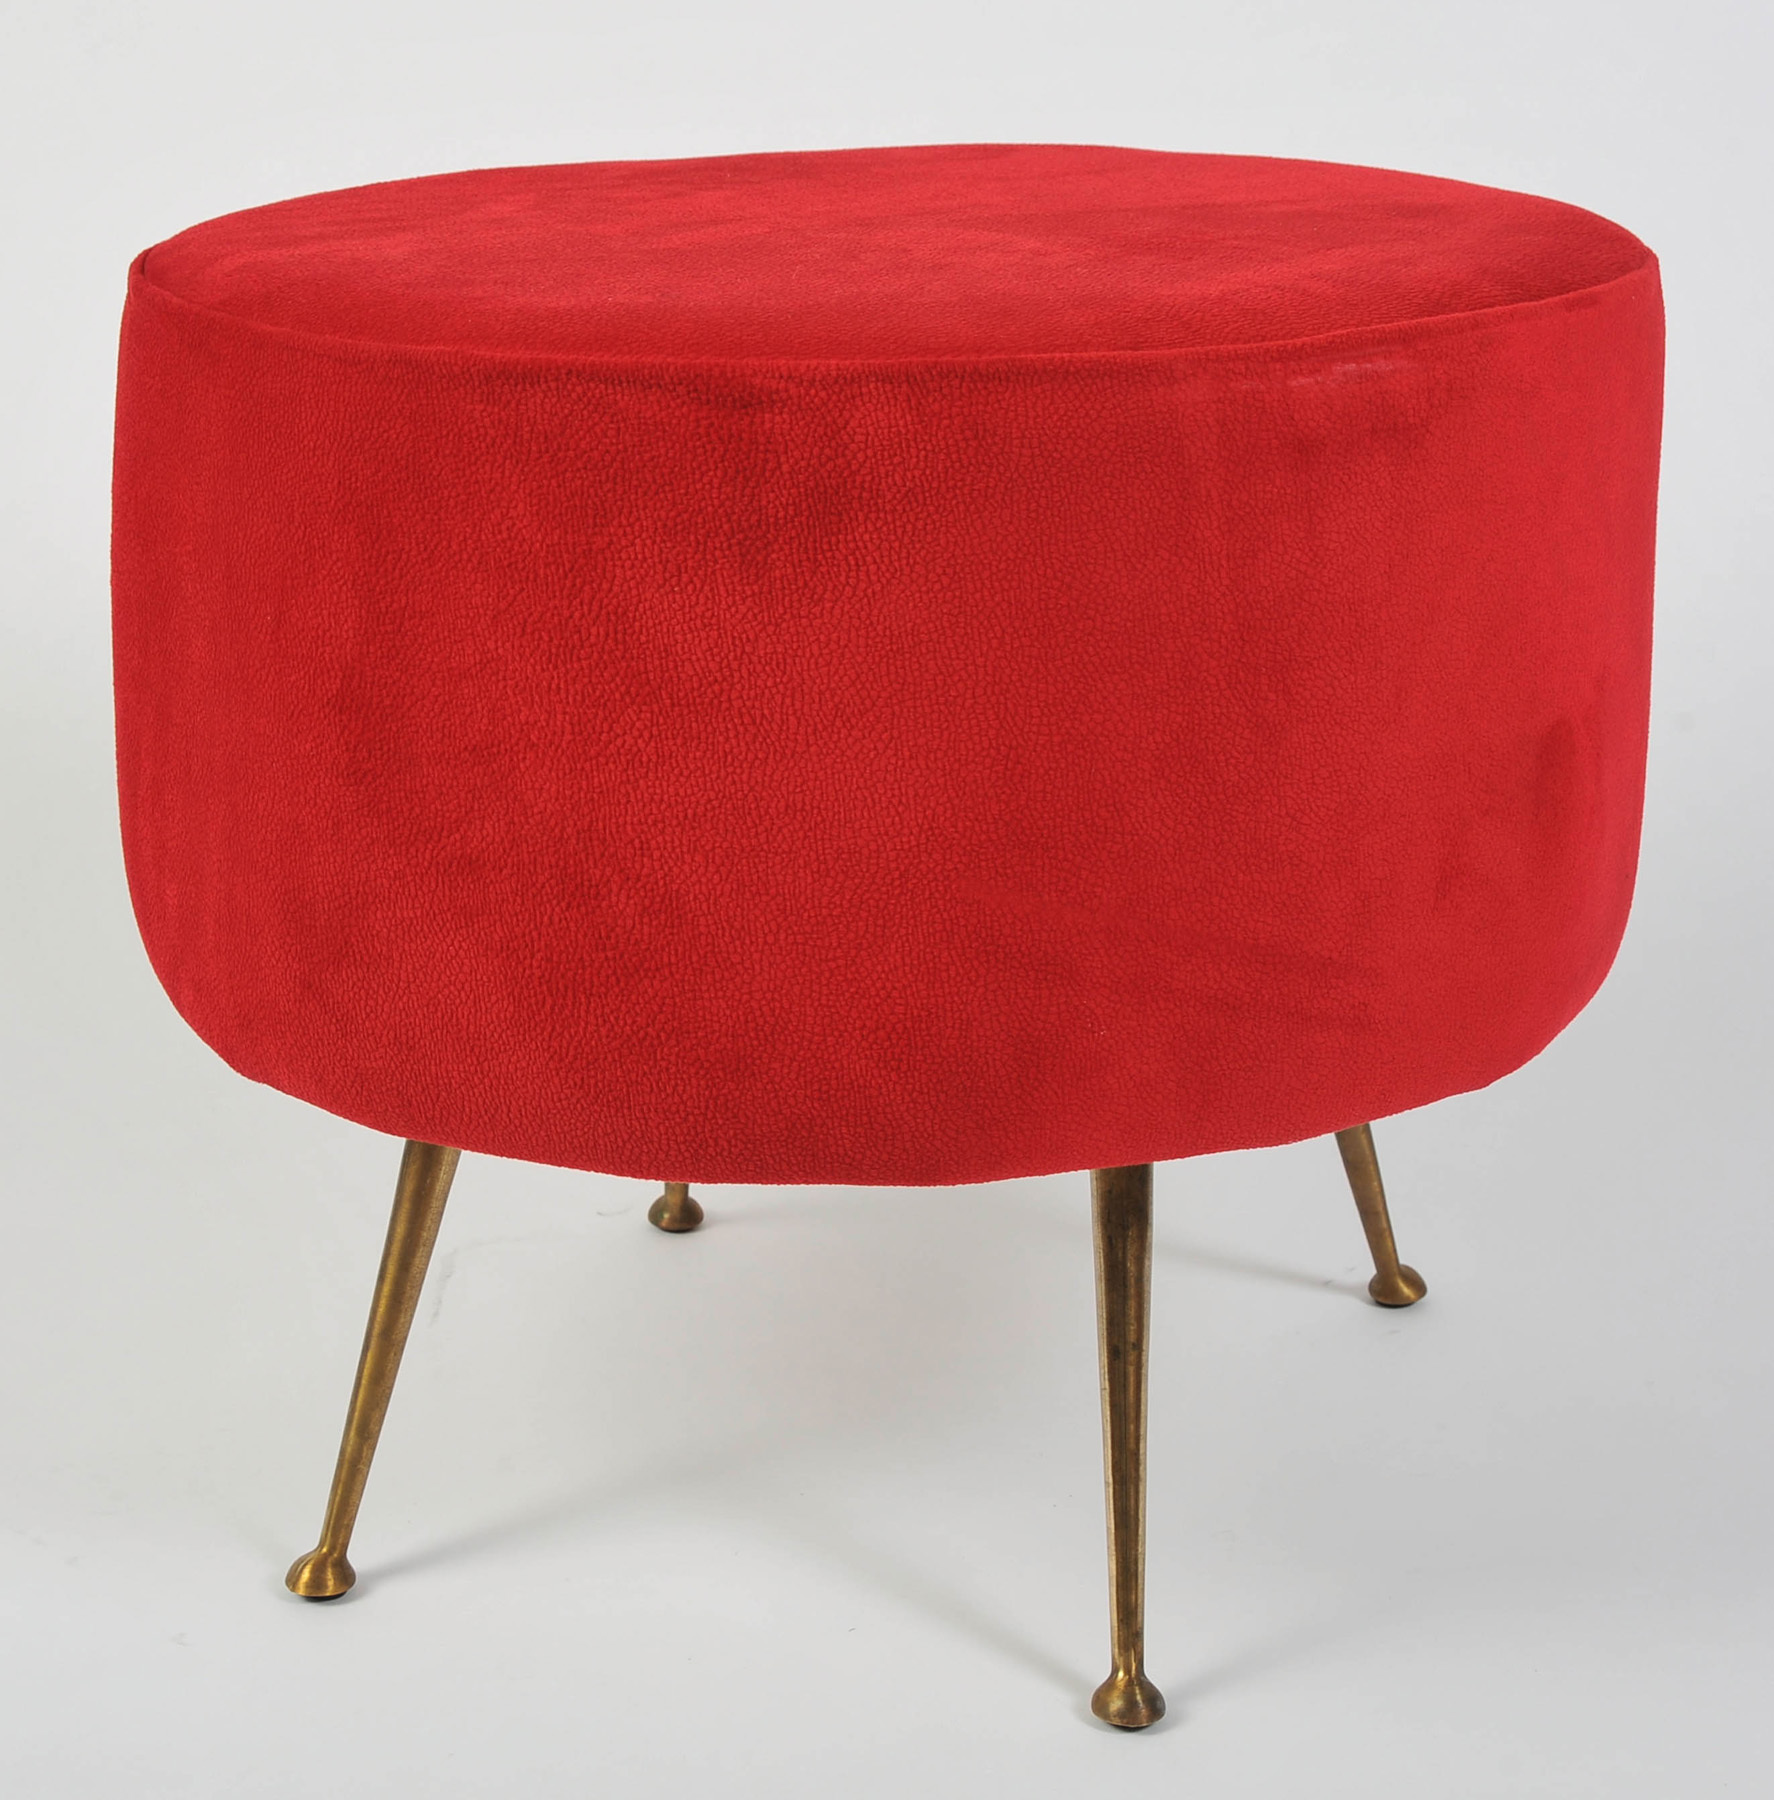 The image for Red Stool 01